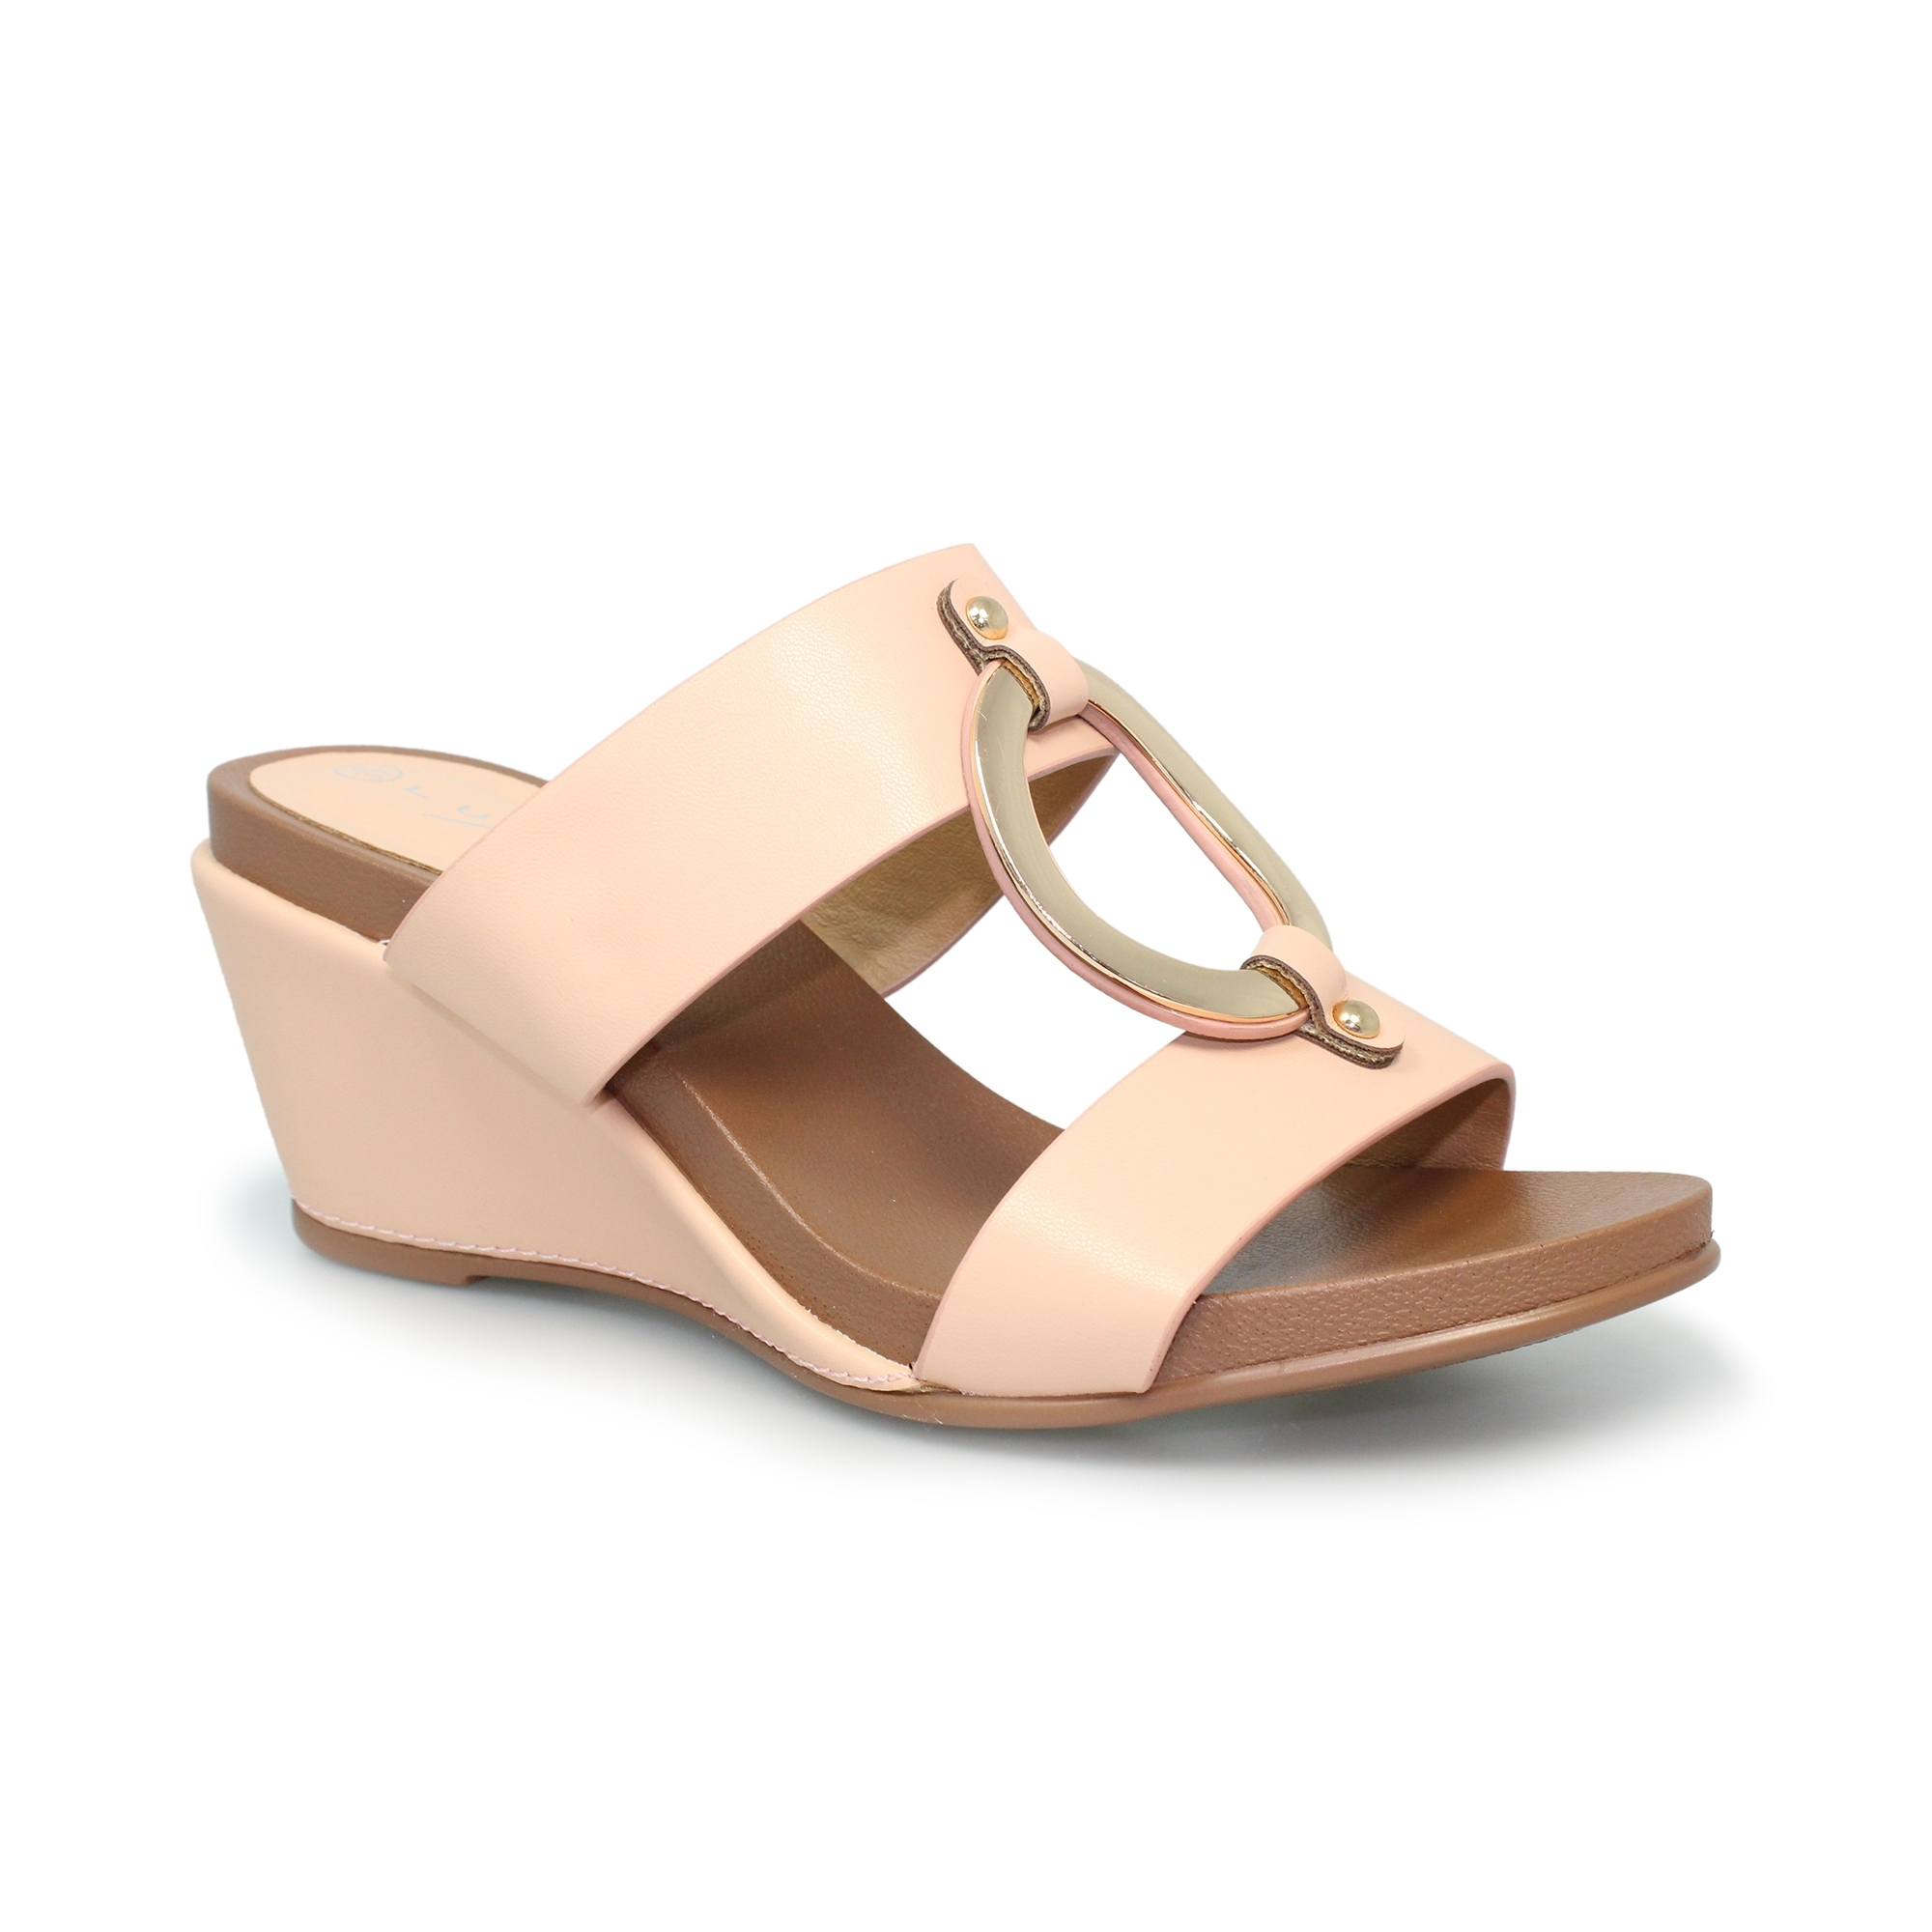 WOMENS CASUAL PARTY SUMMER BEACH HOLIDAY SANDALS LADIES WIDE FIT LOW HEEL SHOES